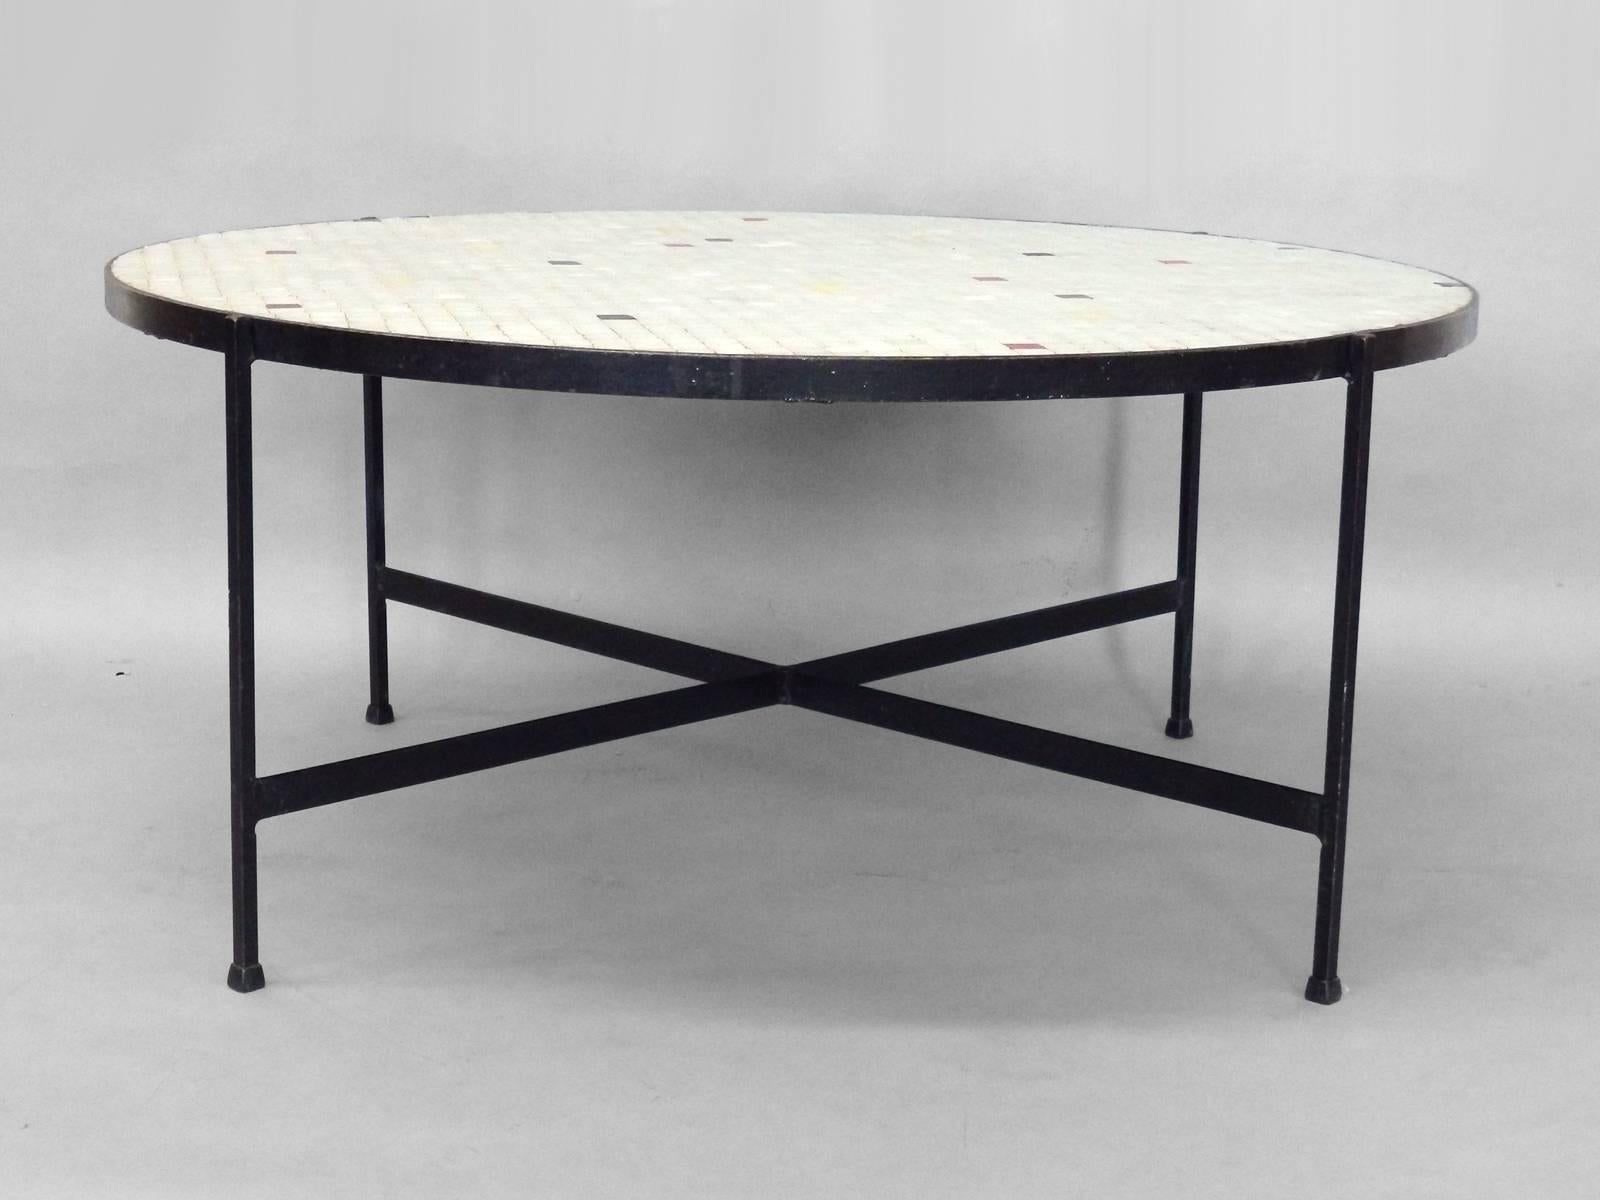 Nice Black Wrought Iron With Inset Glass Tile Top Coffee Table For Sale At  1stdibs